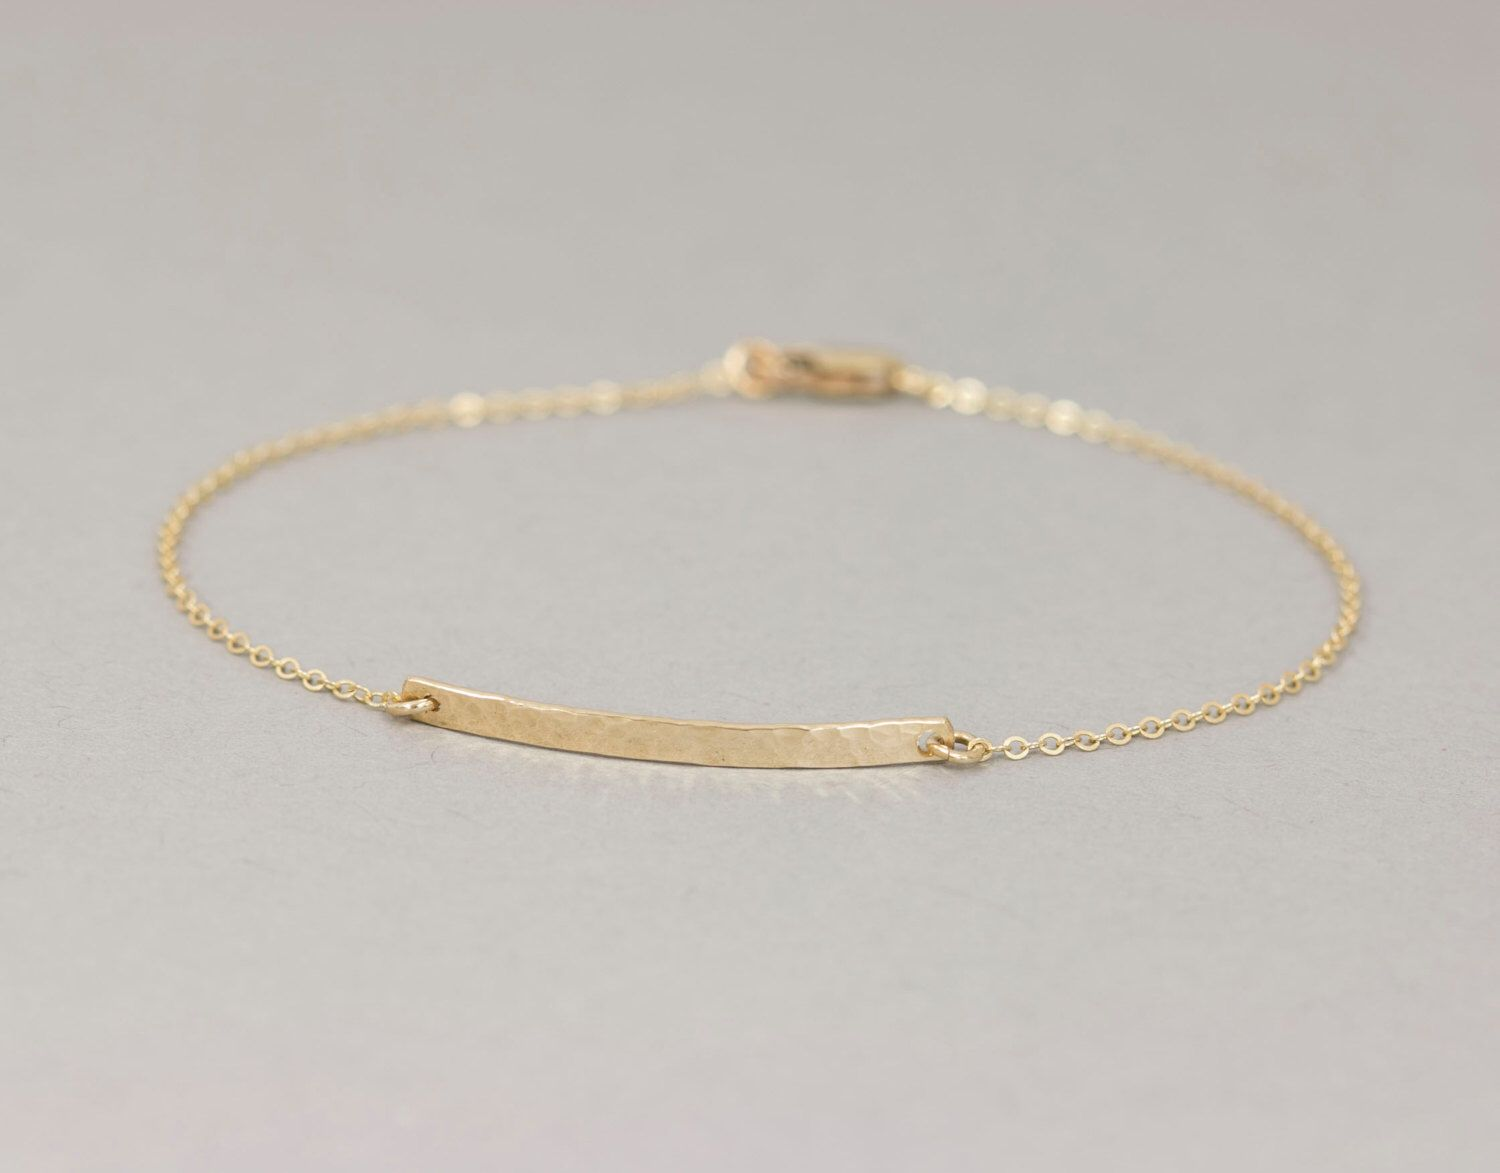 Ultra Minimal Delicate Bar Bracelet Dainty Blank Or Personalized